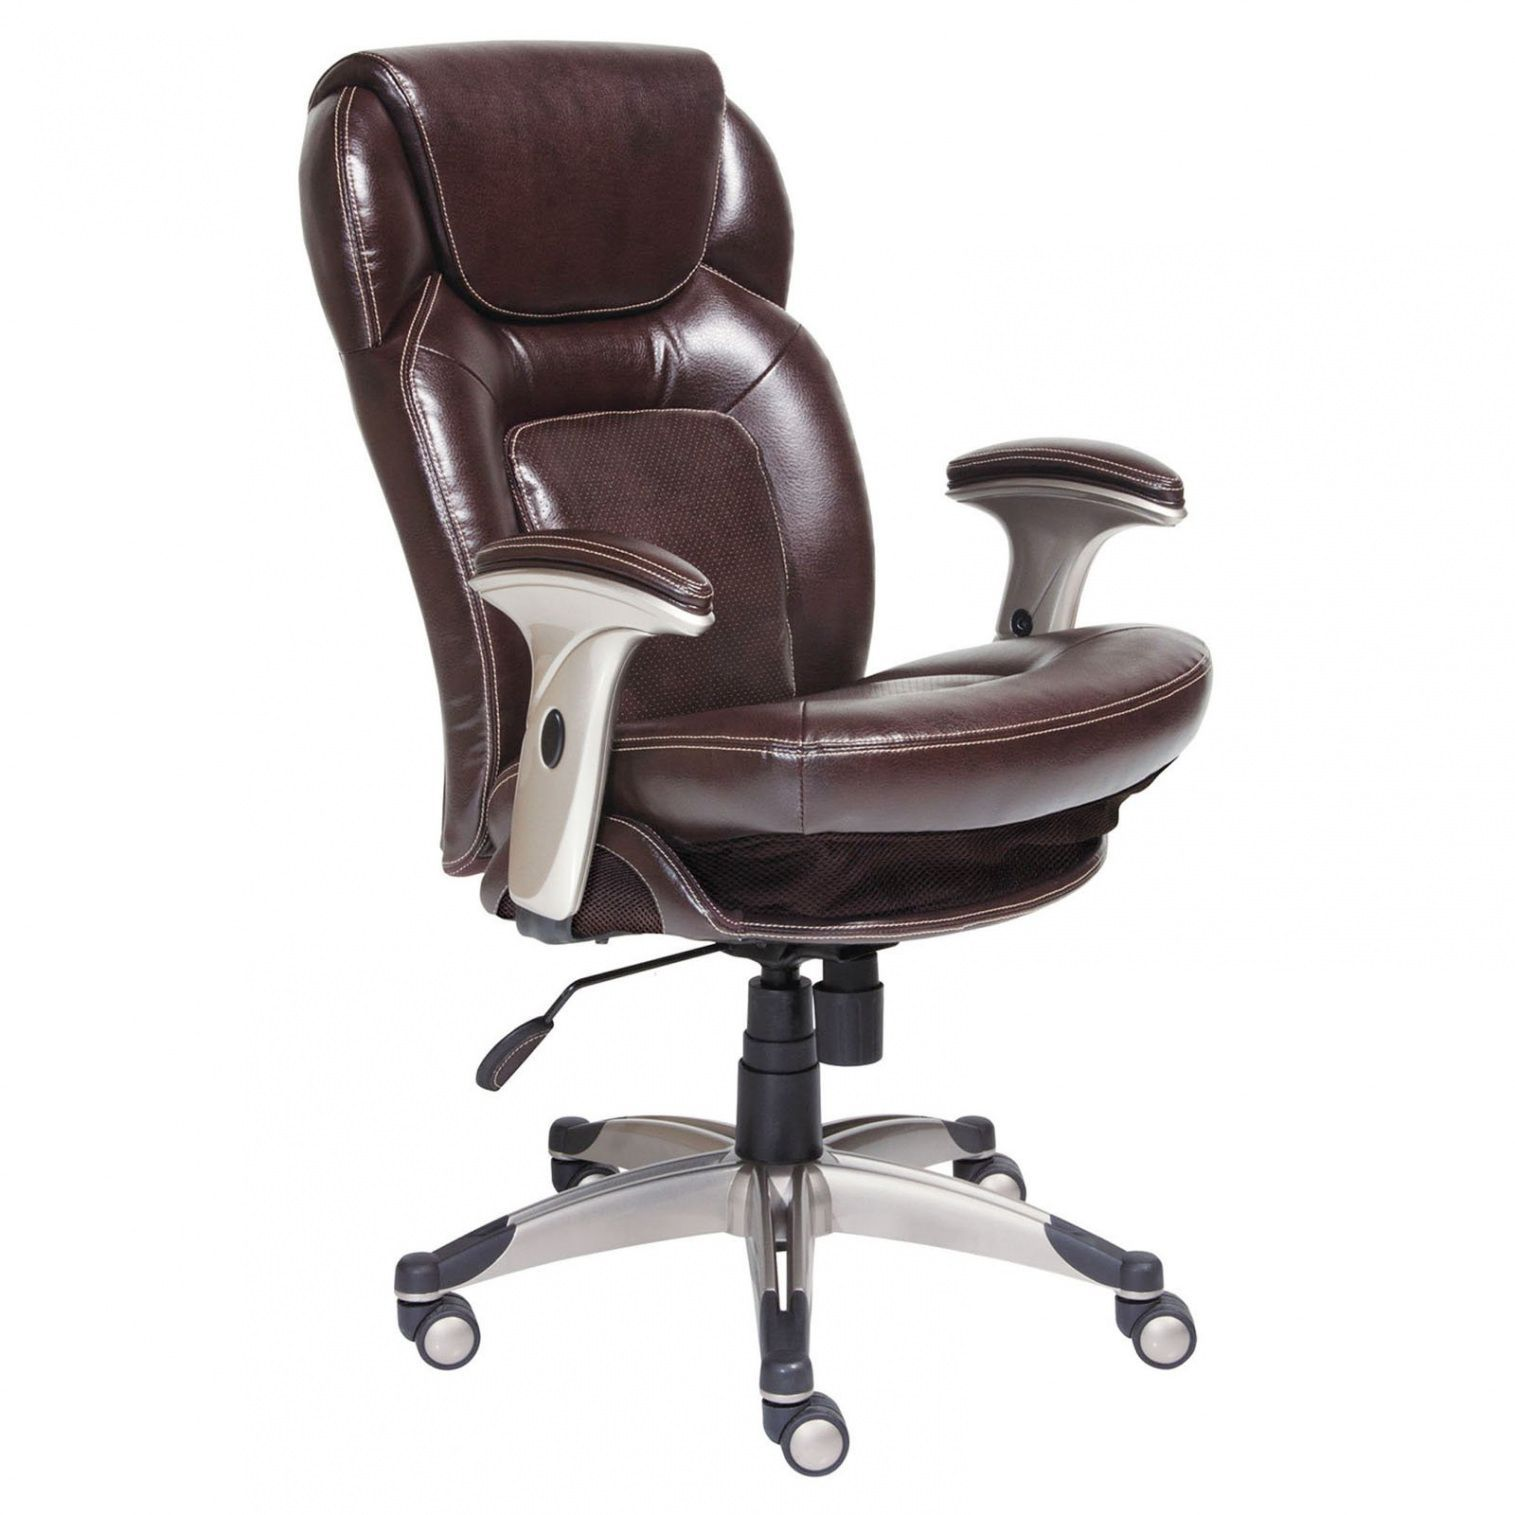 Serta leather office chair modern home office furniture check more